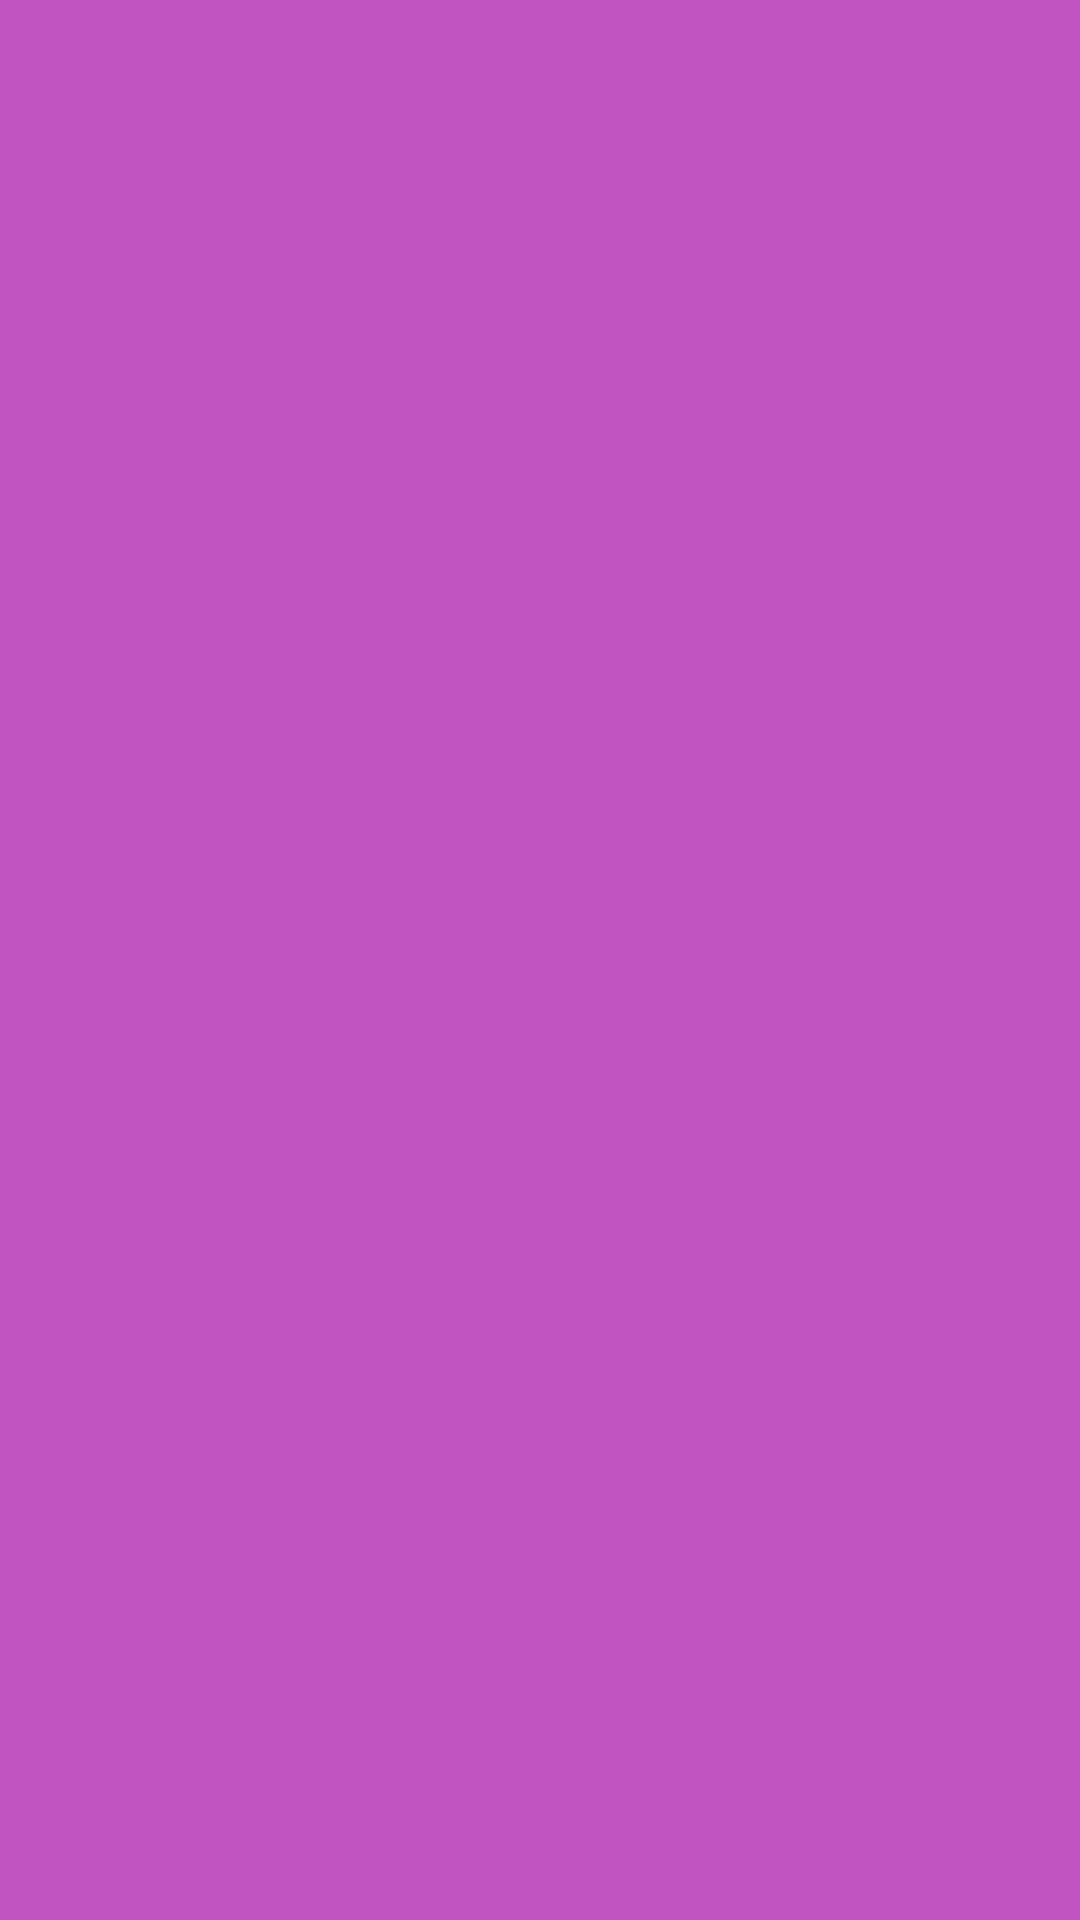 1080x1920 Deep Fuchsia Solid Color Background